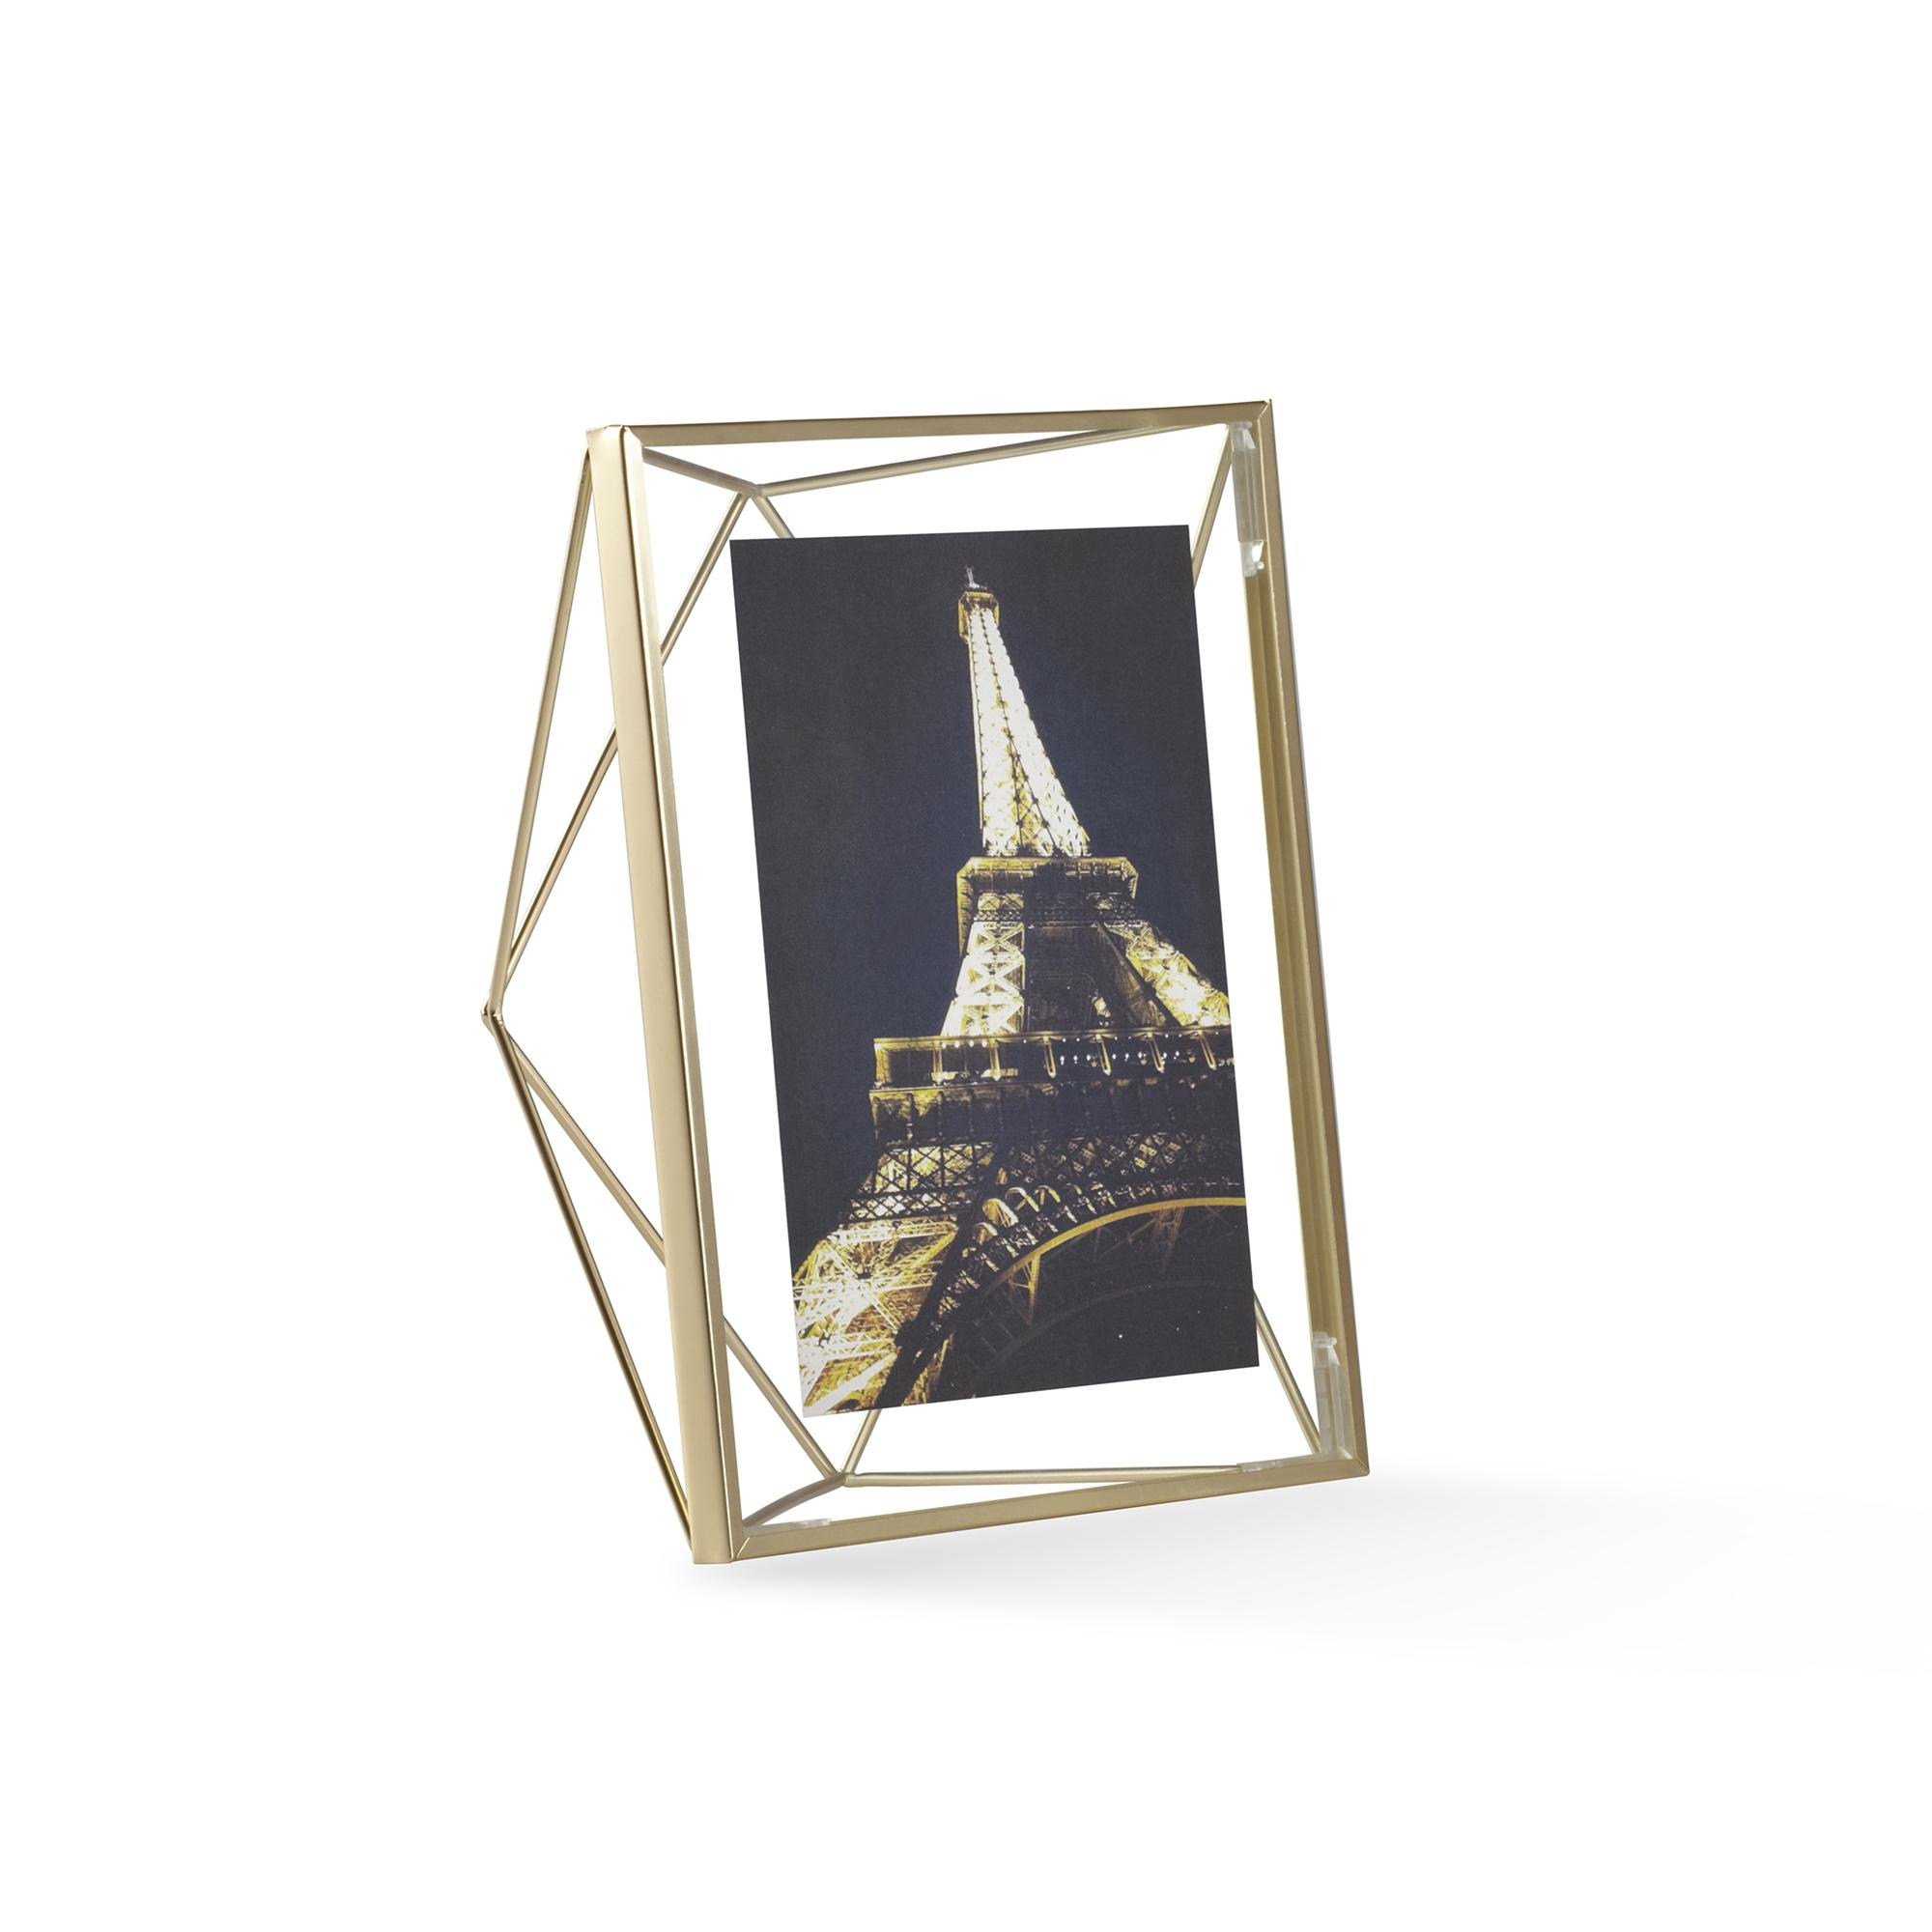 Umbra Prisma Photo Frame 5 x 7 - Matte Brass